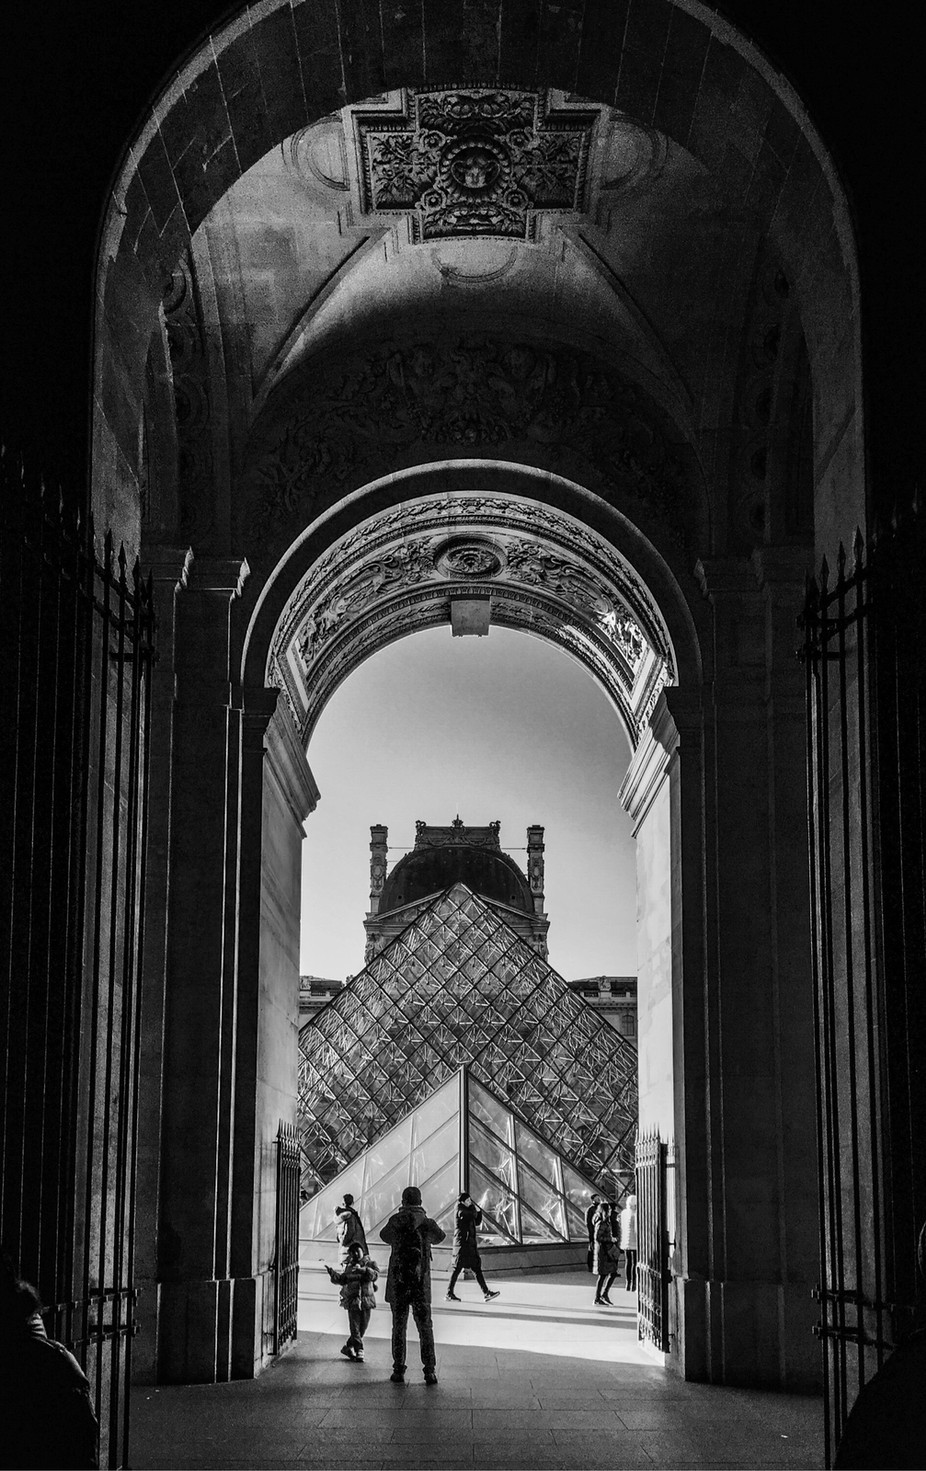 Louvre's mystery by christianredermayer - Paris Photo Contest